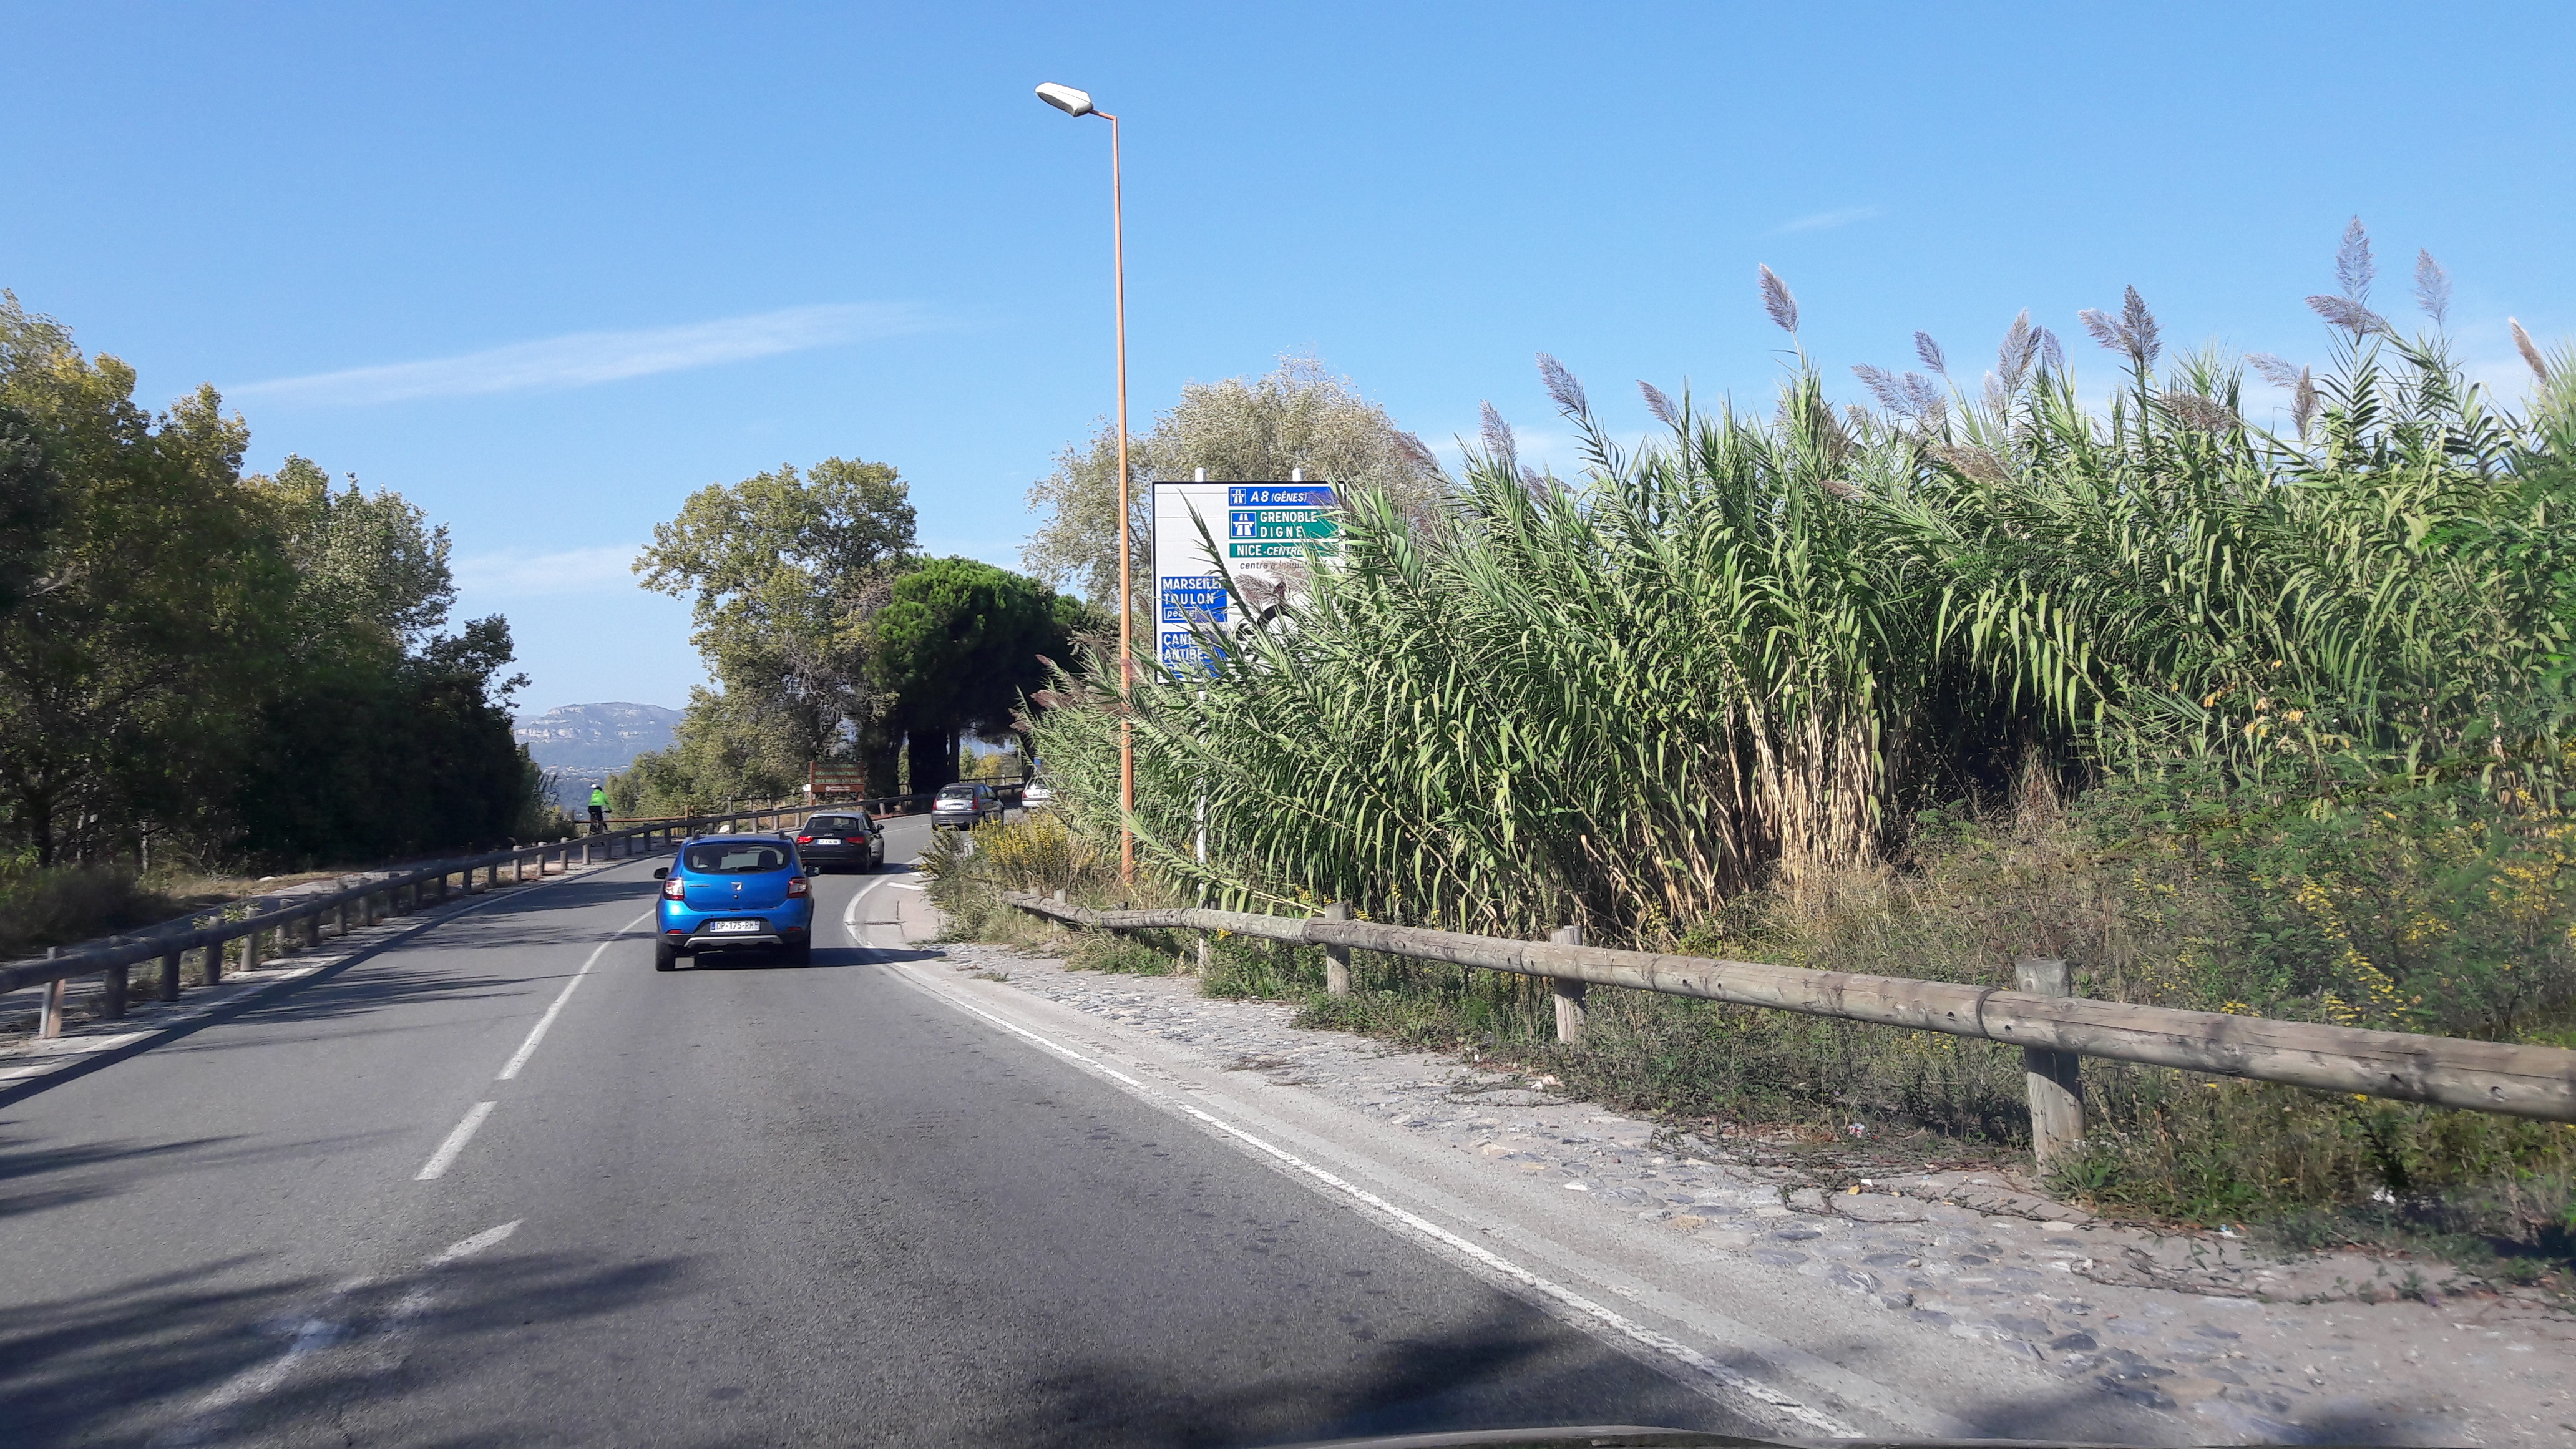 1nice-a8-en-route-out-airport-nice-to-cap-oct17